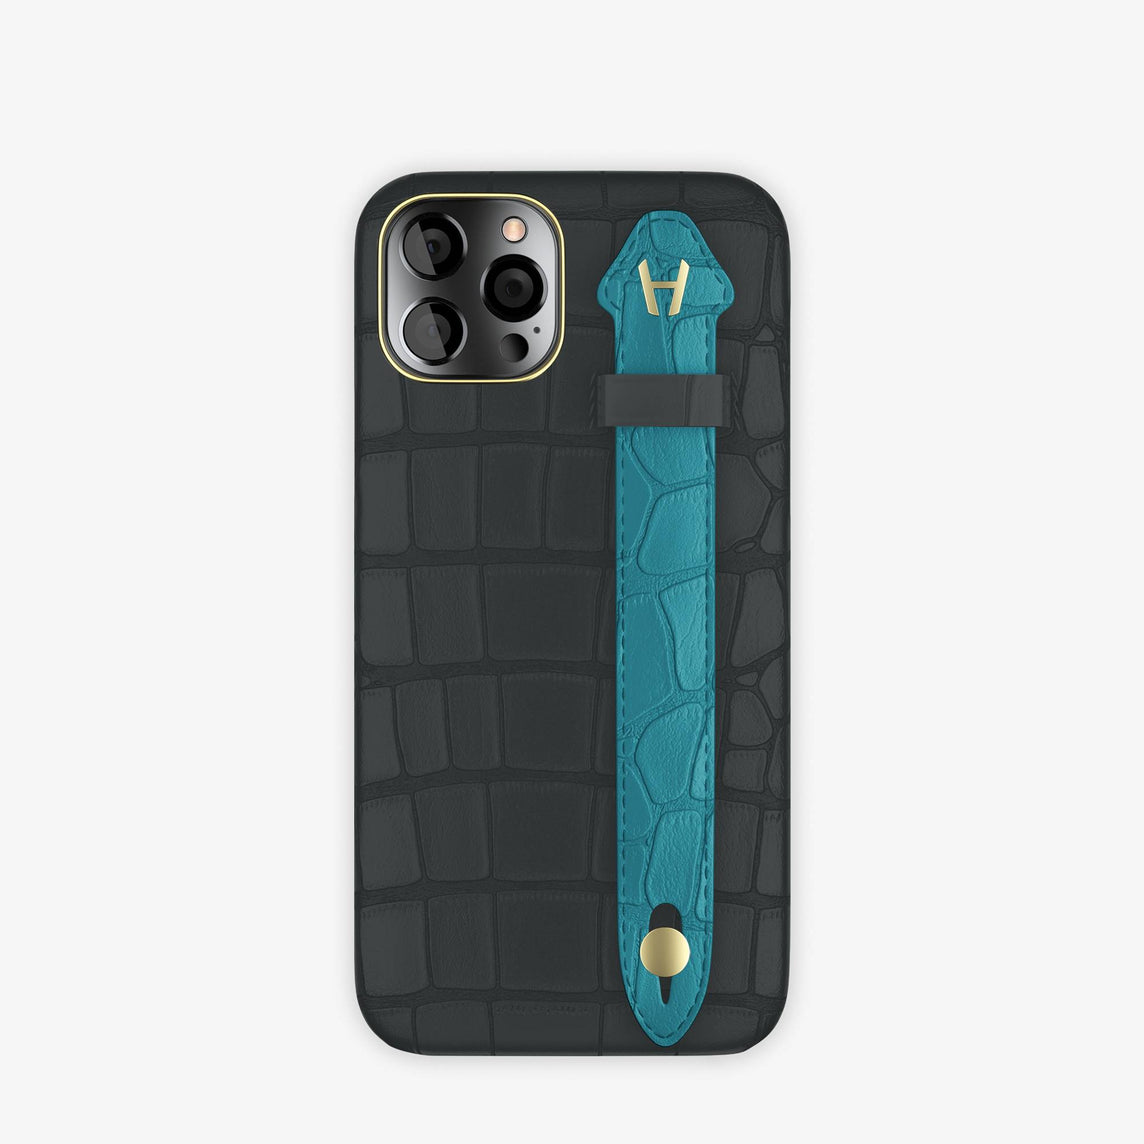 Alligator Side Finger Case iPhone 12 & iPhone 12 Pro | Anthracite/Blue Teal -Yellow Gold